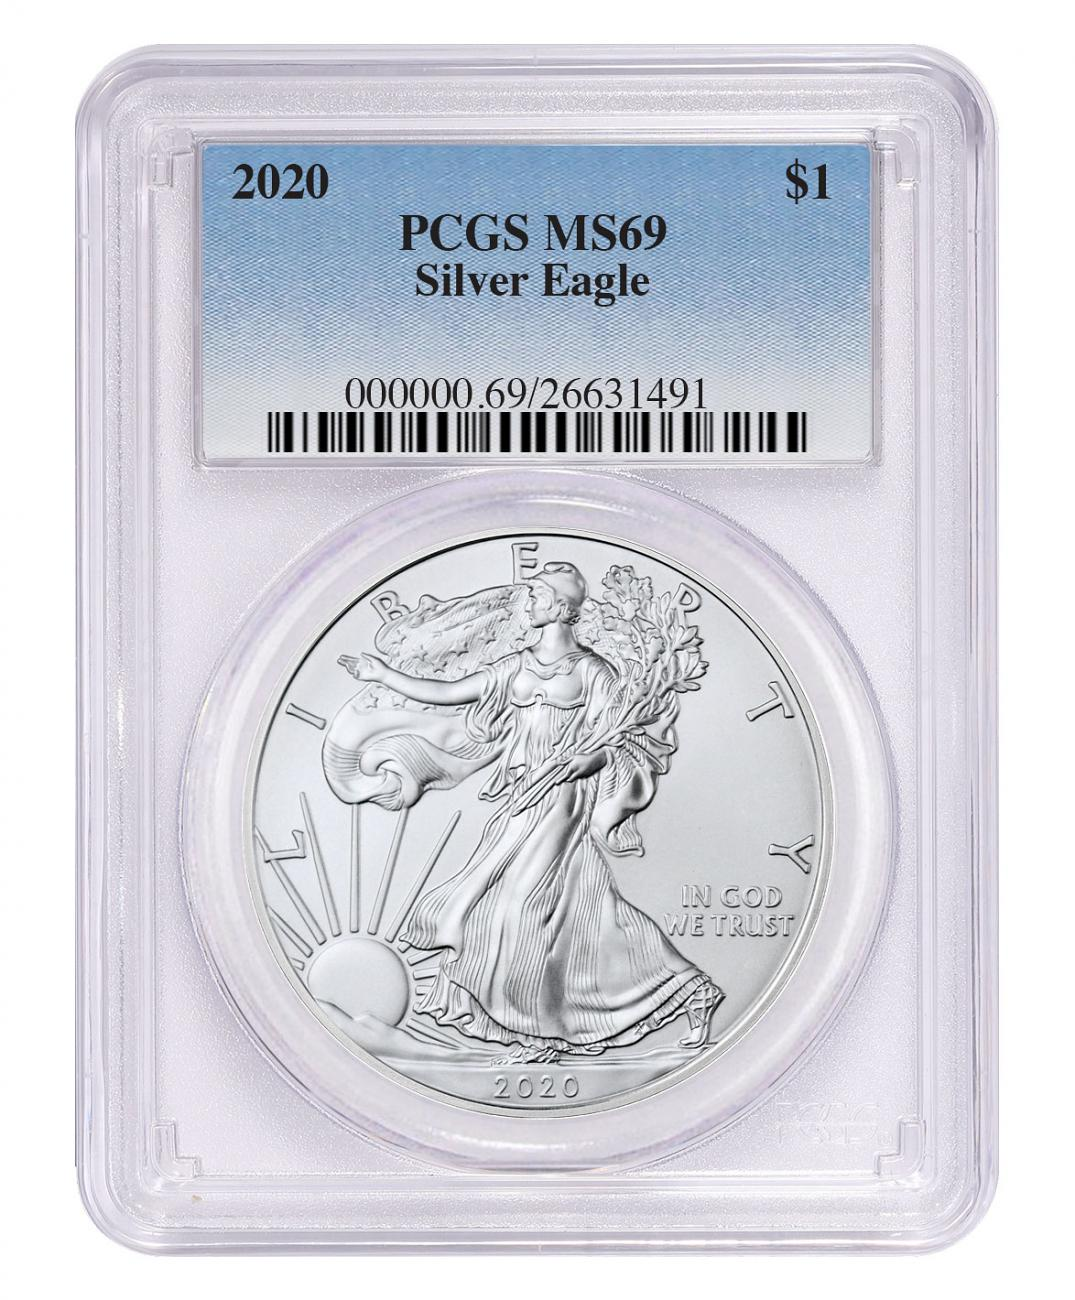 2020 1 oz American Silver Eagle $1 Coin PCGS MS69